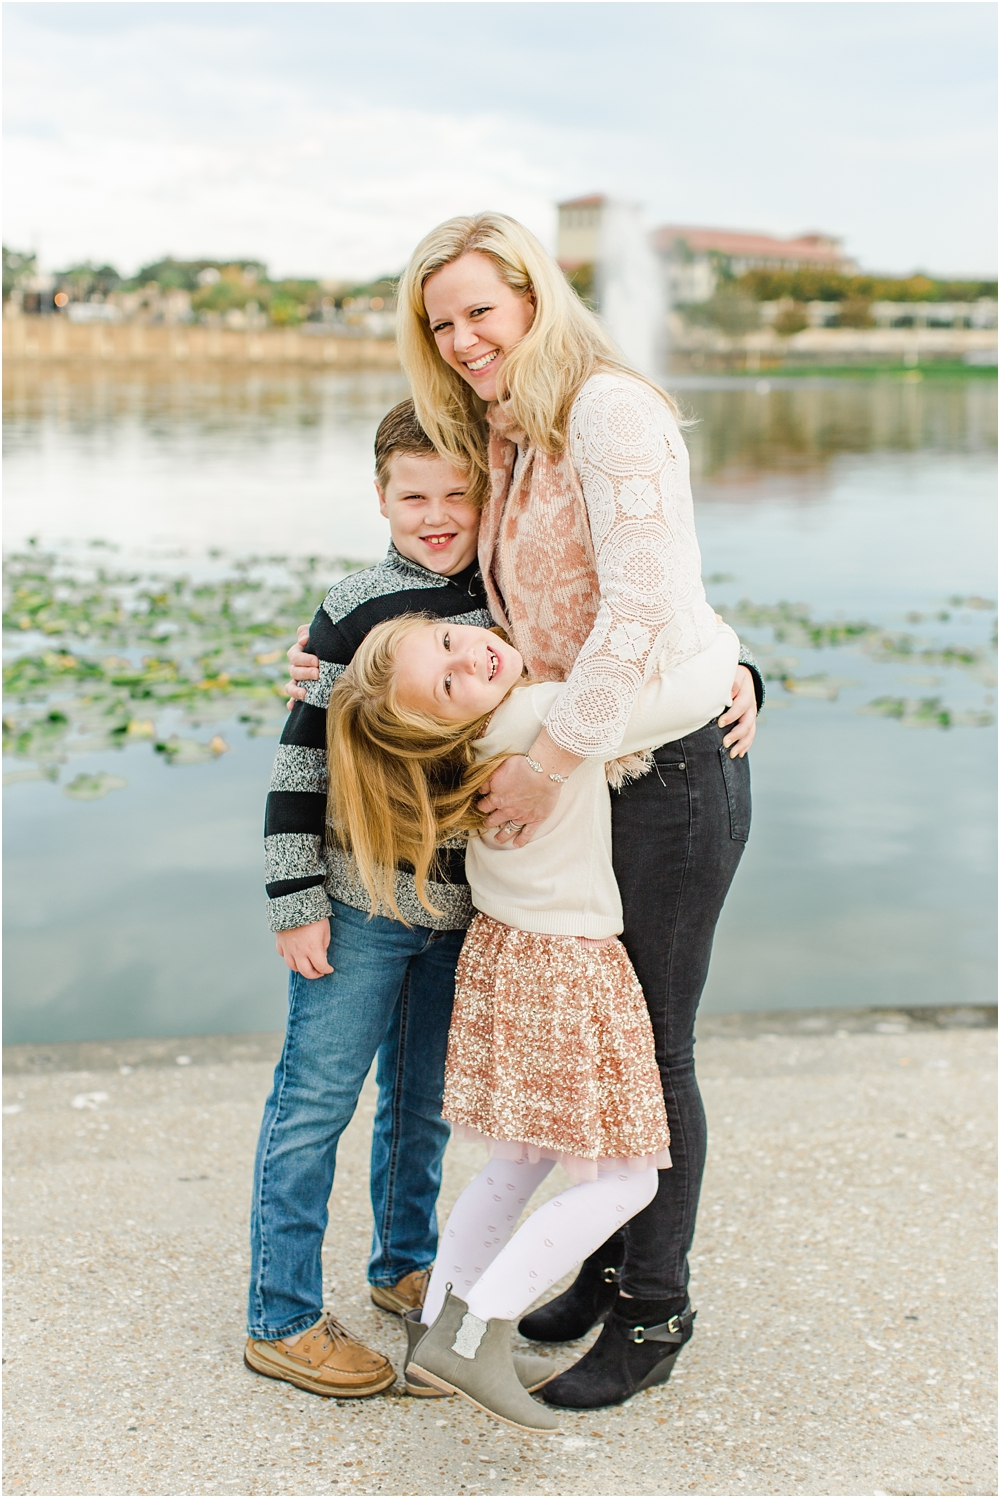 Ashley Holstein Photography | Lakeland Florida Family Photographer Hollis Gardens Lake Mirror